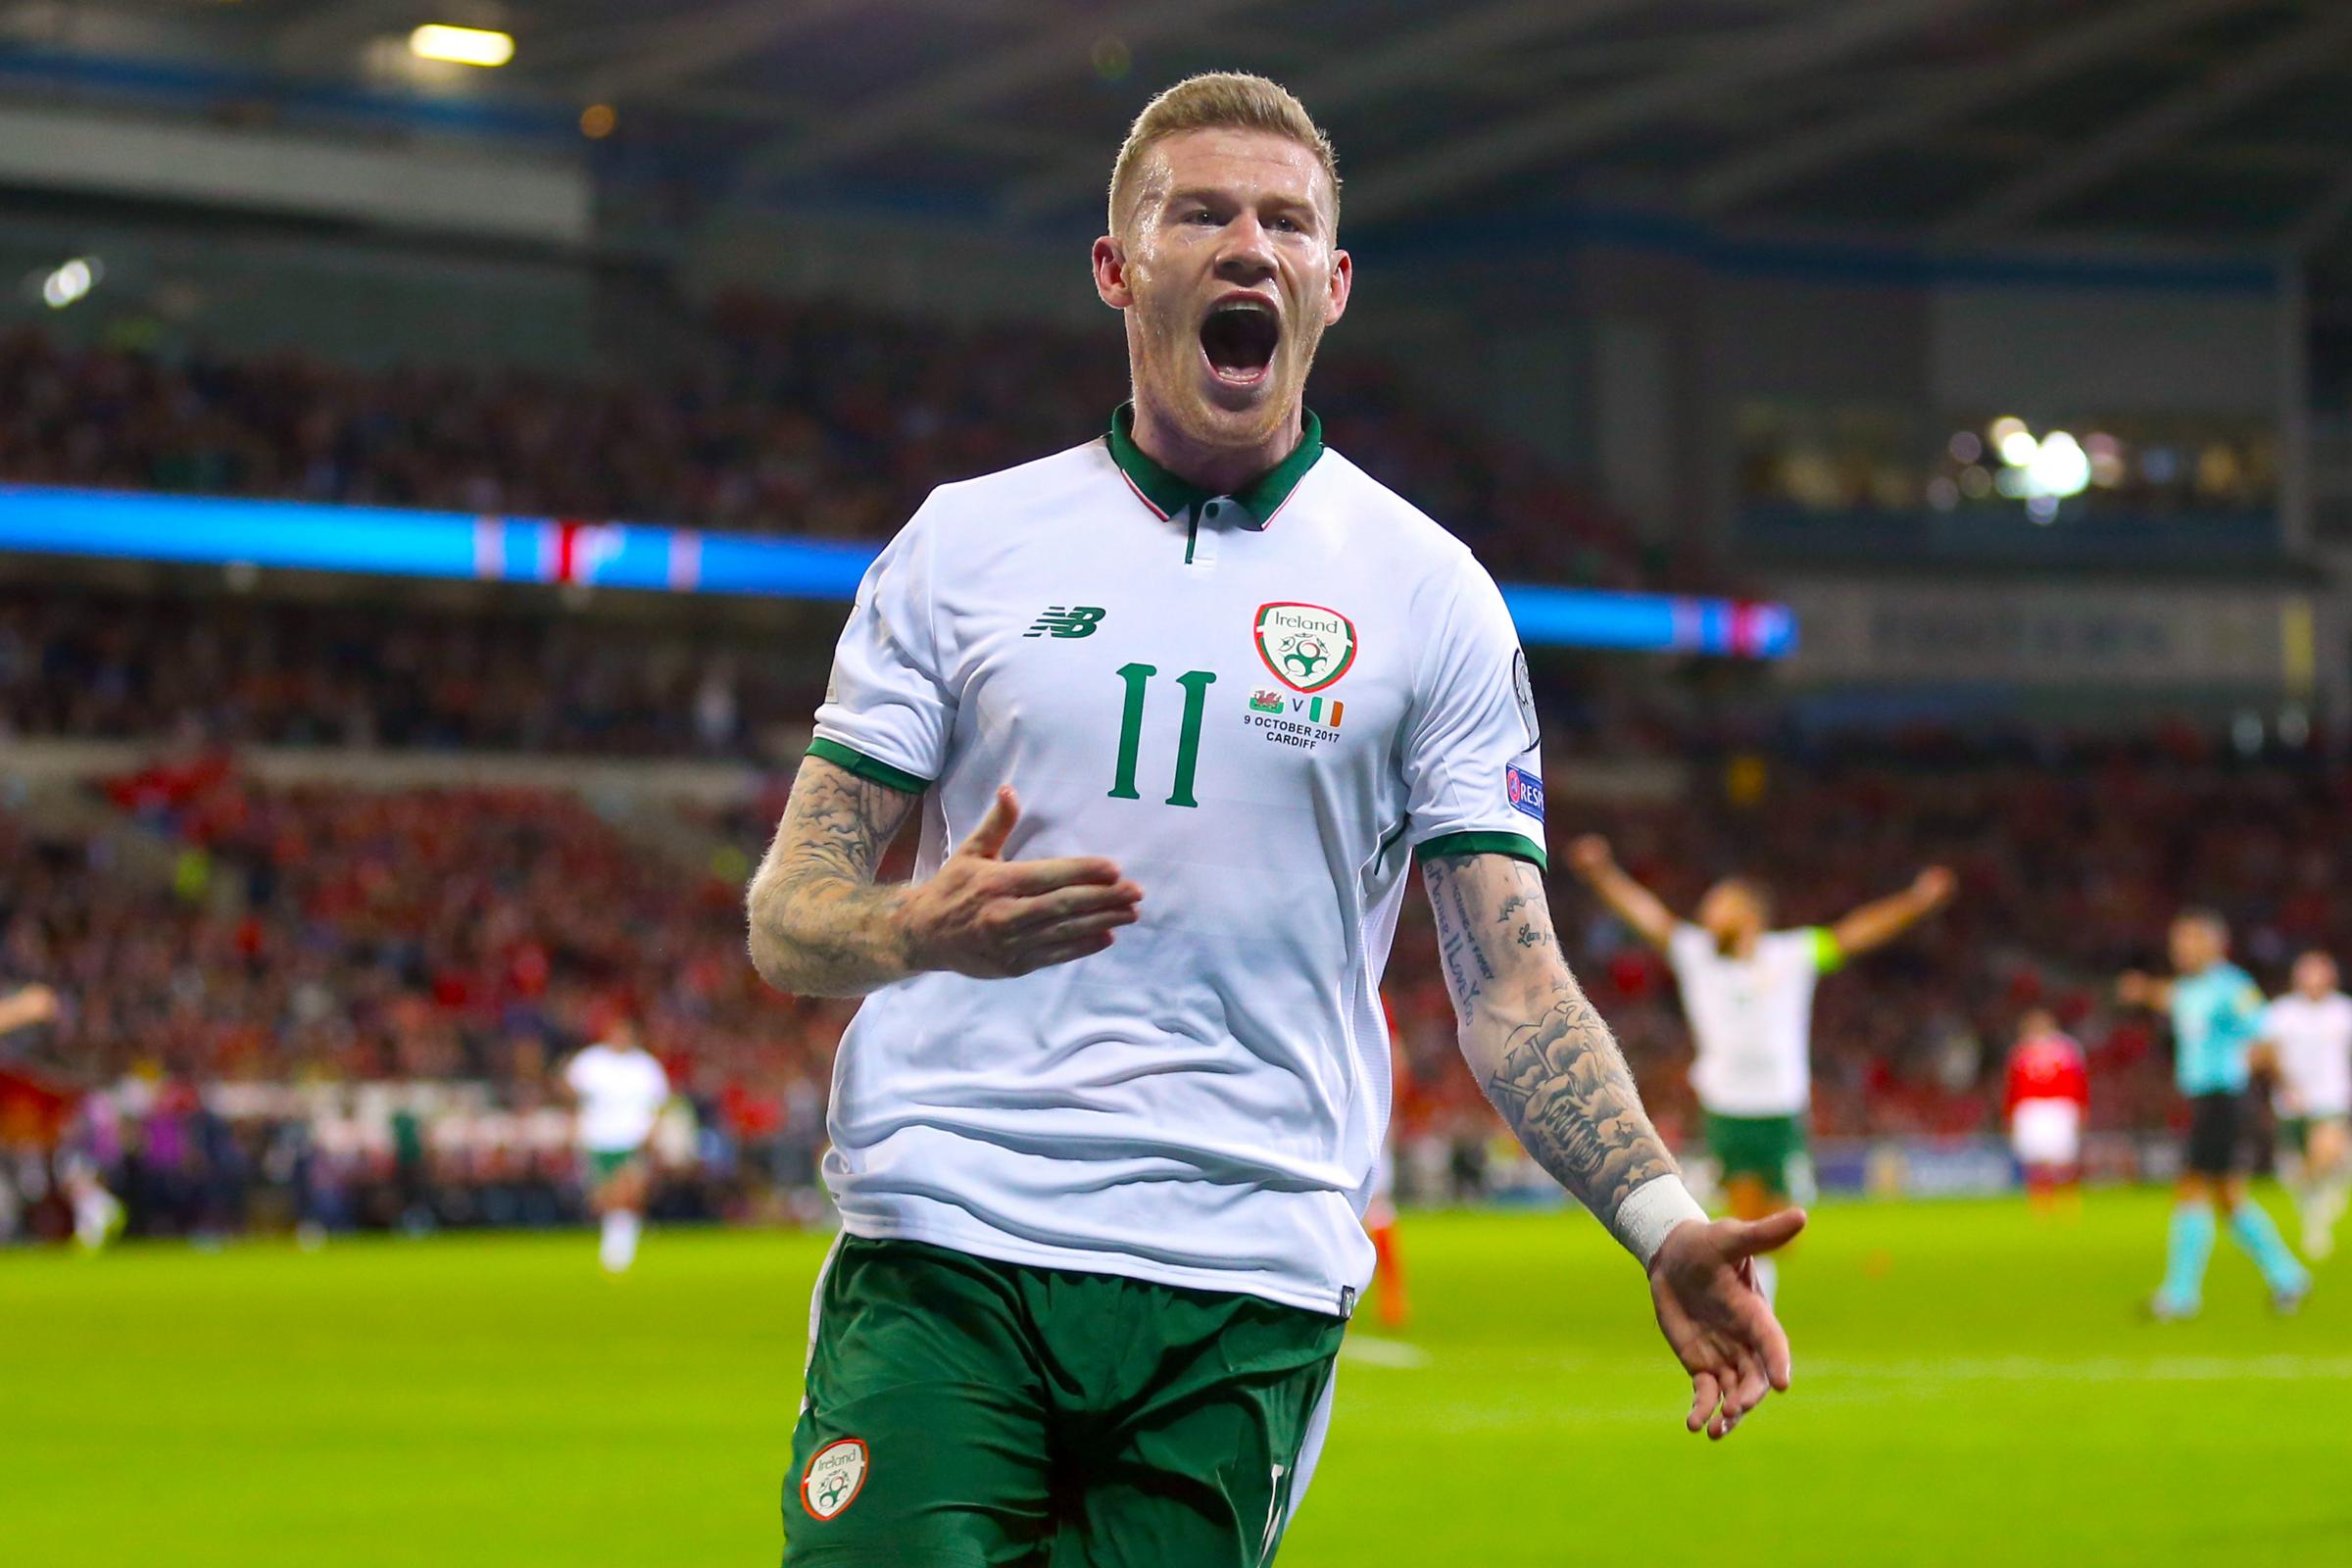 Republic of Ireland's James McClean celebrates scoring his side's first goal of the game during the 2018 FIFA World Cup Qualifying Group D match at the Cardiff City Stadium, Cardiff.